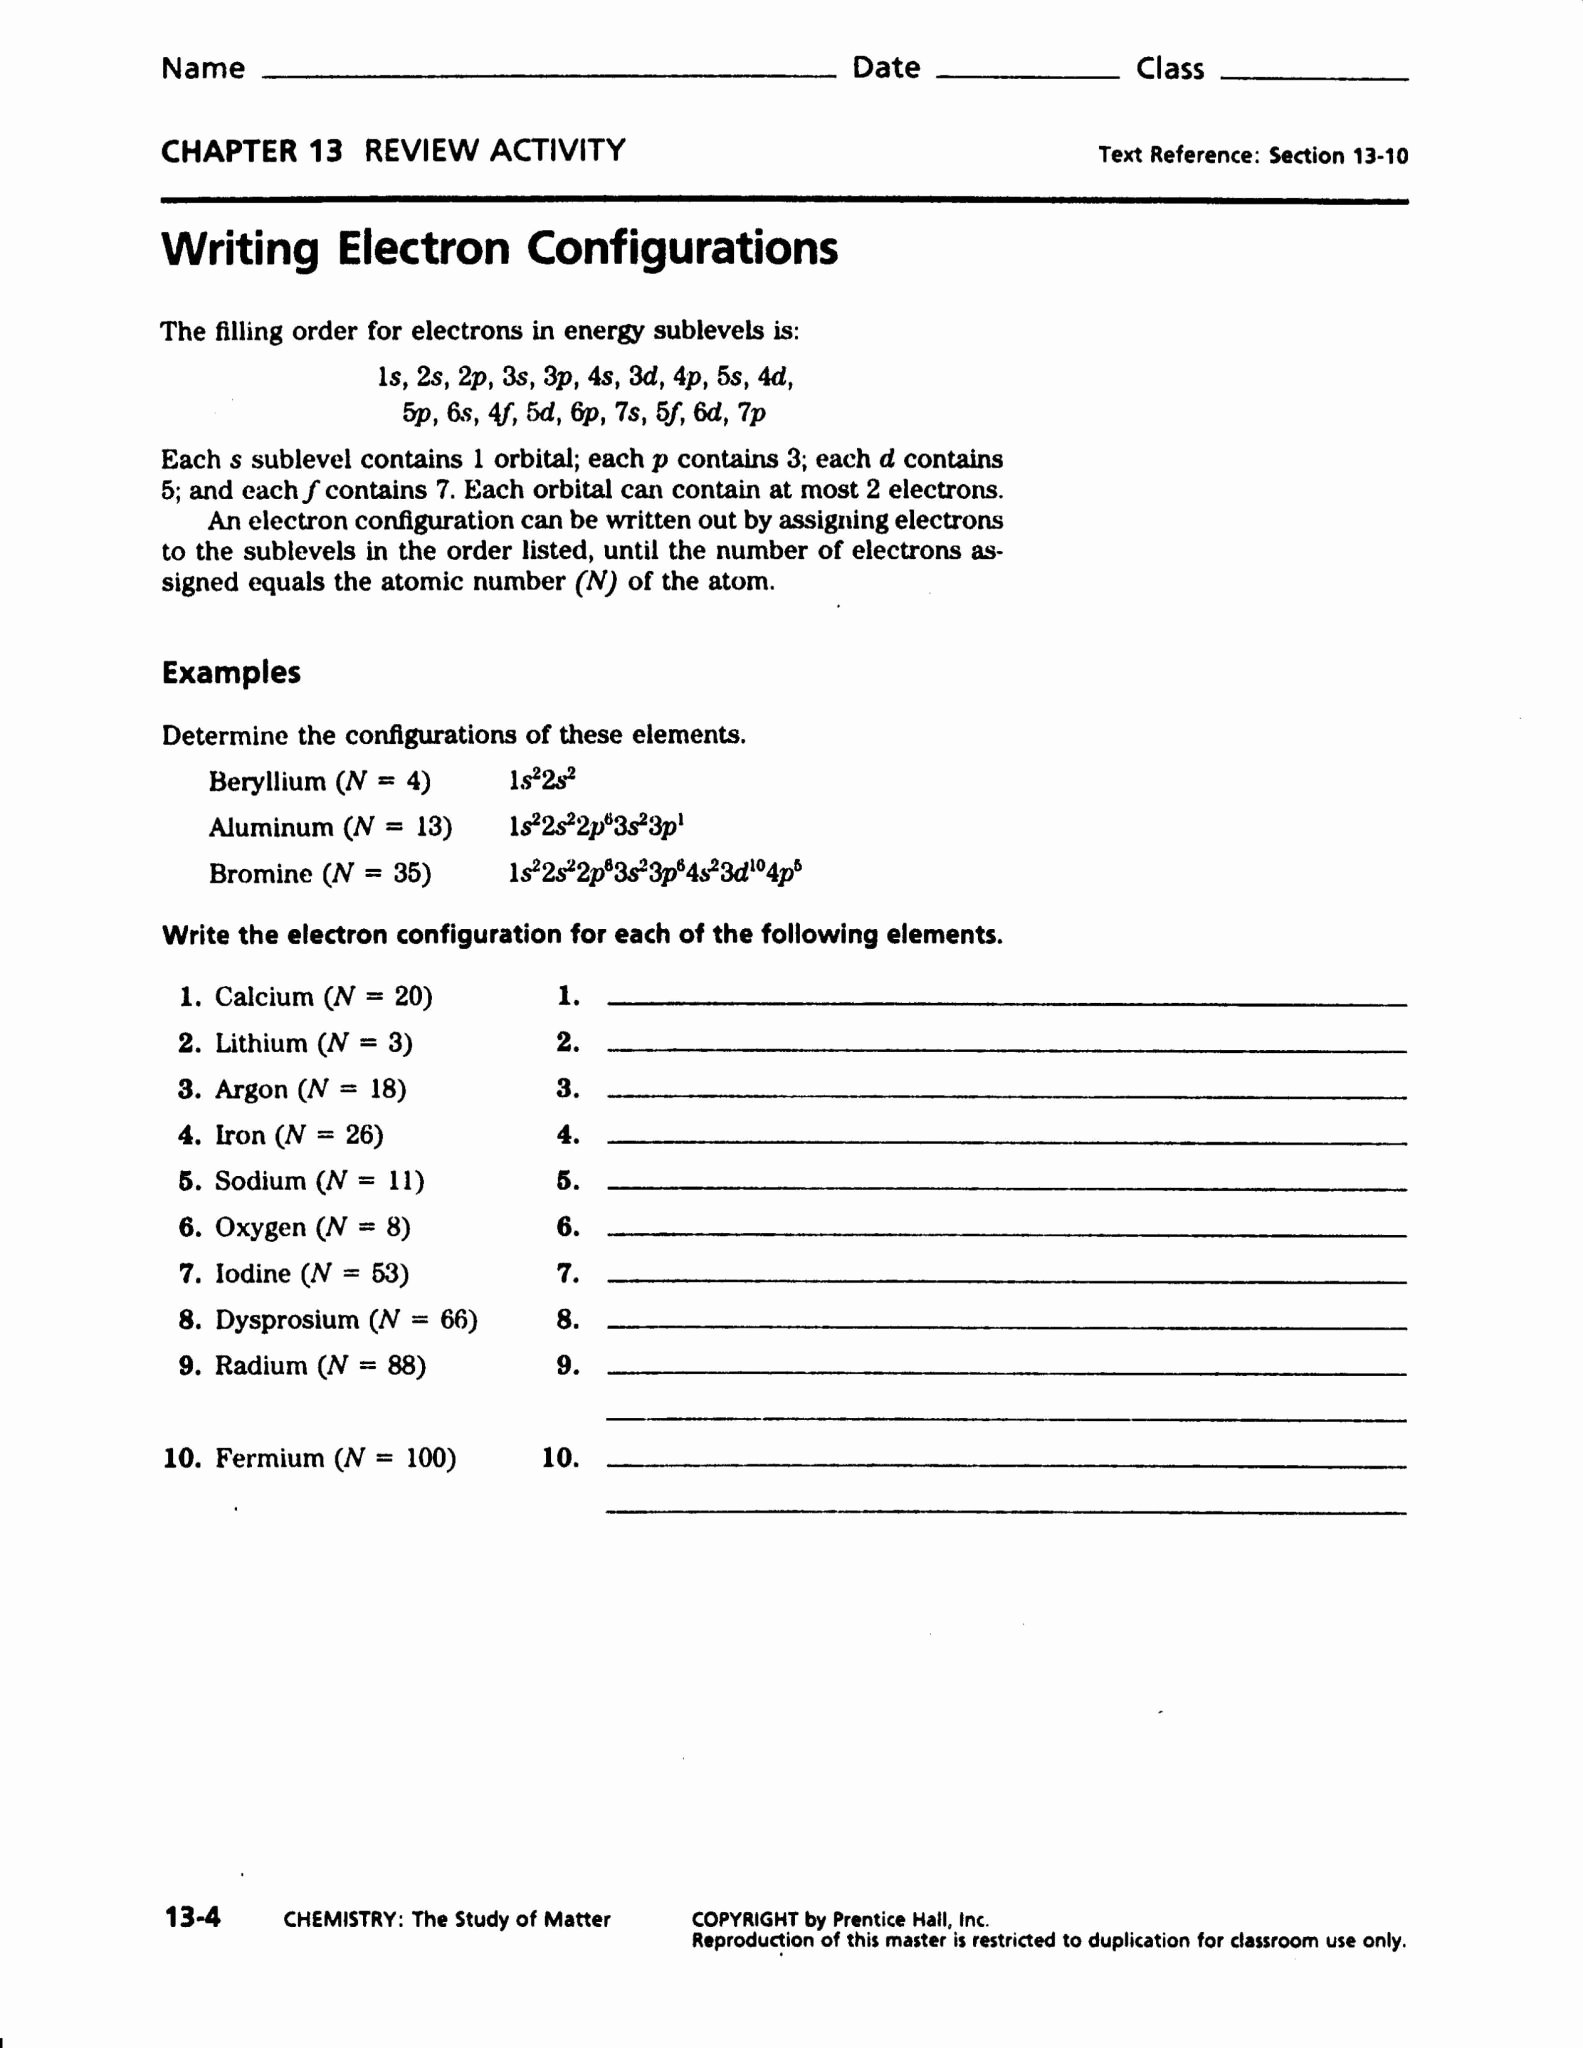 Quantum Numbers Practice Worksheet Awesome Protons Neutrons and Electrons Practice Worksheet Answer